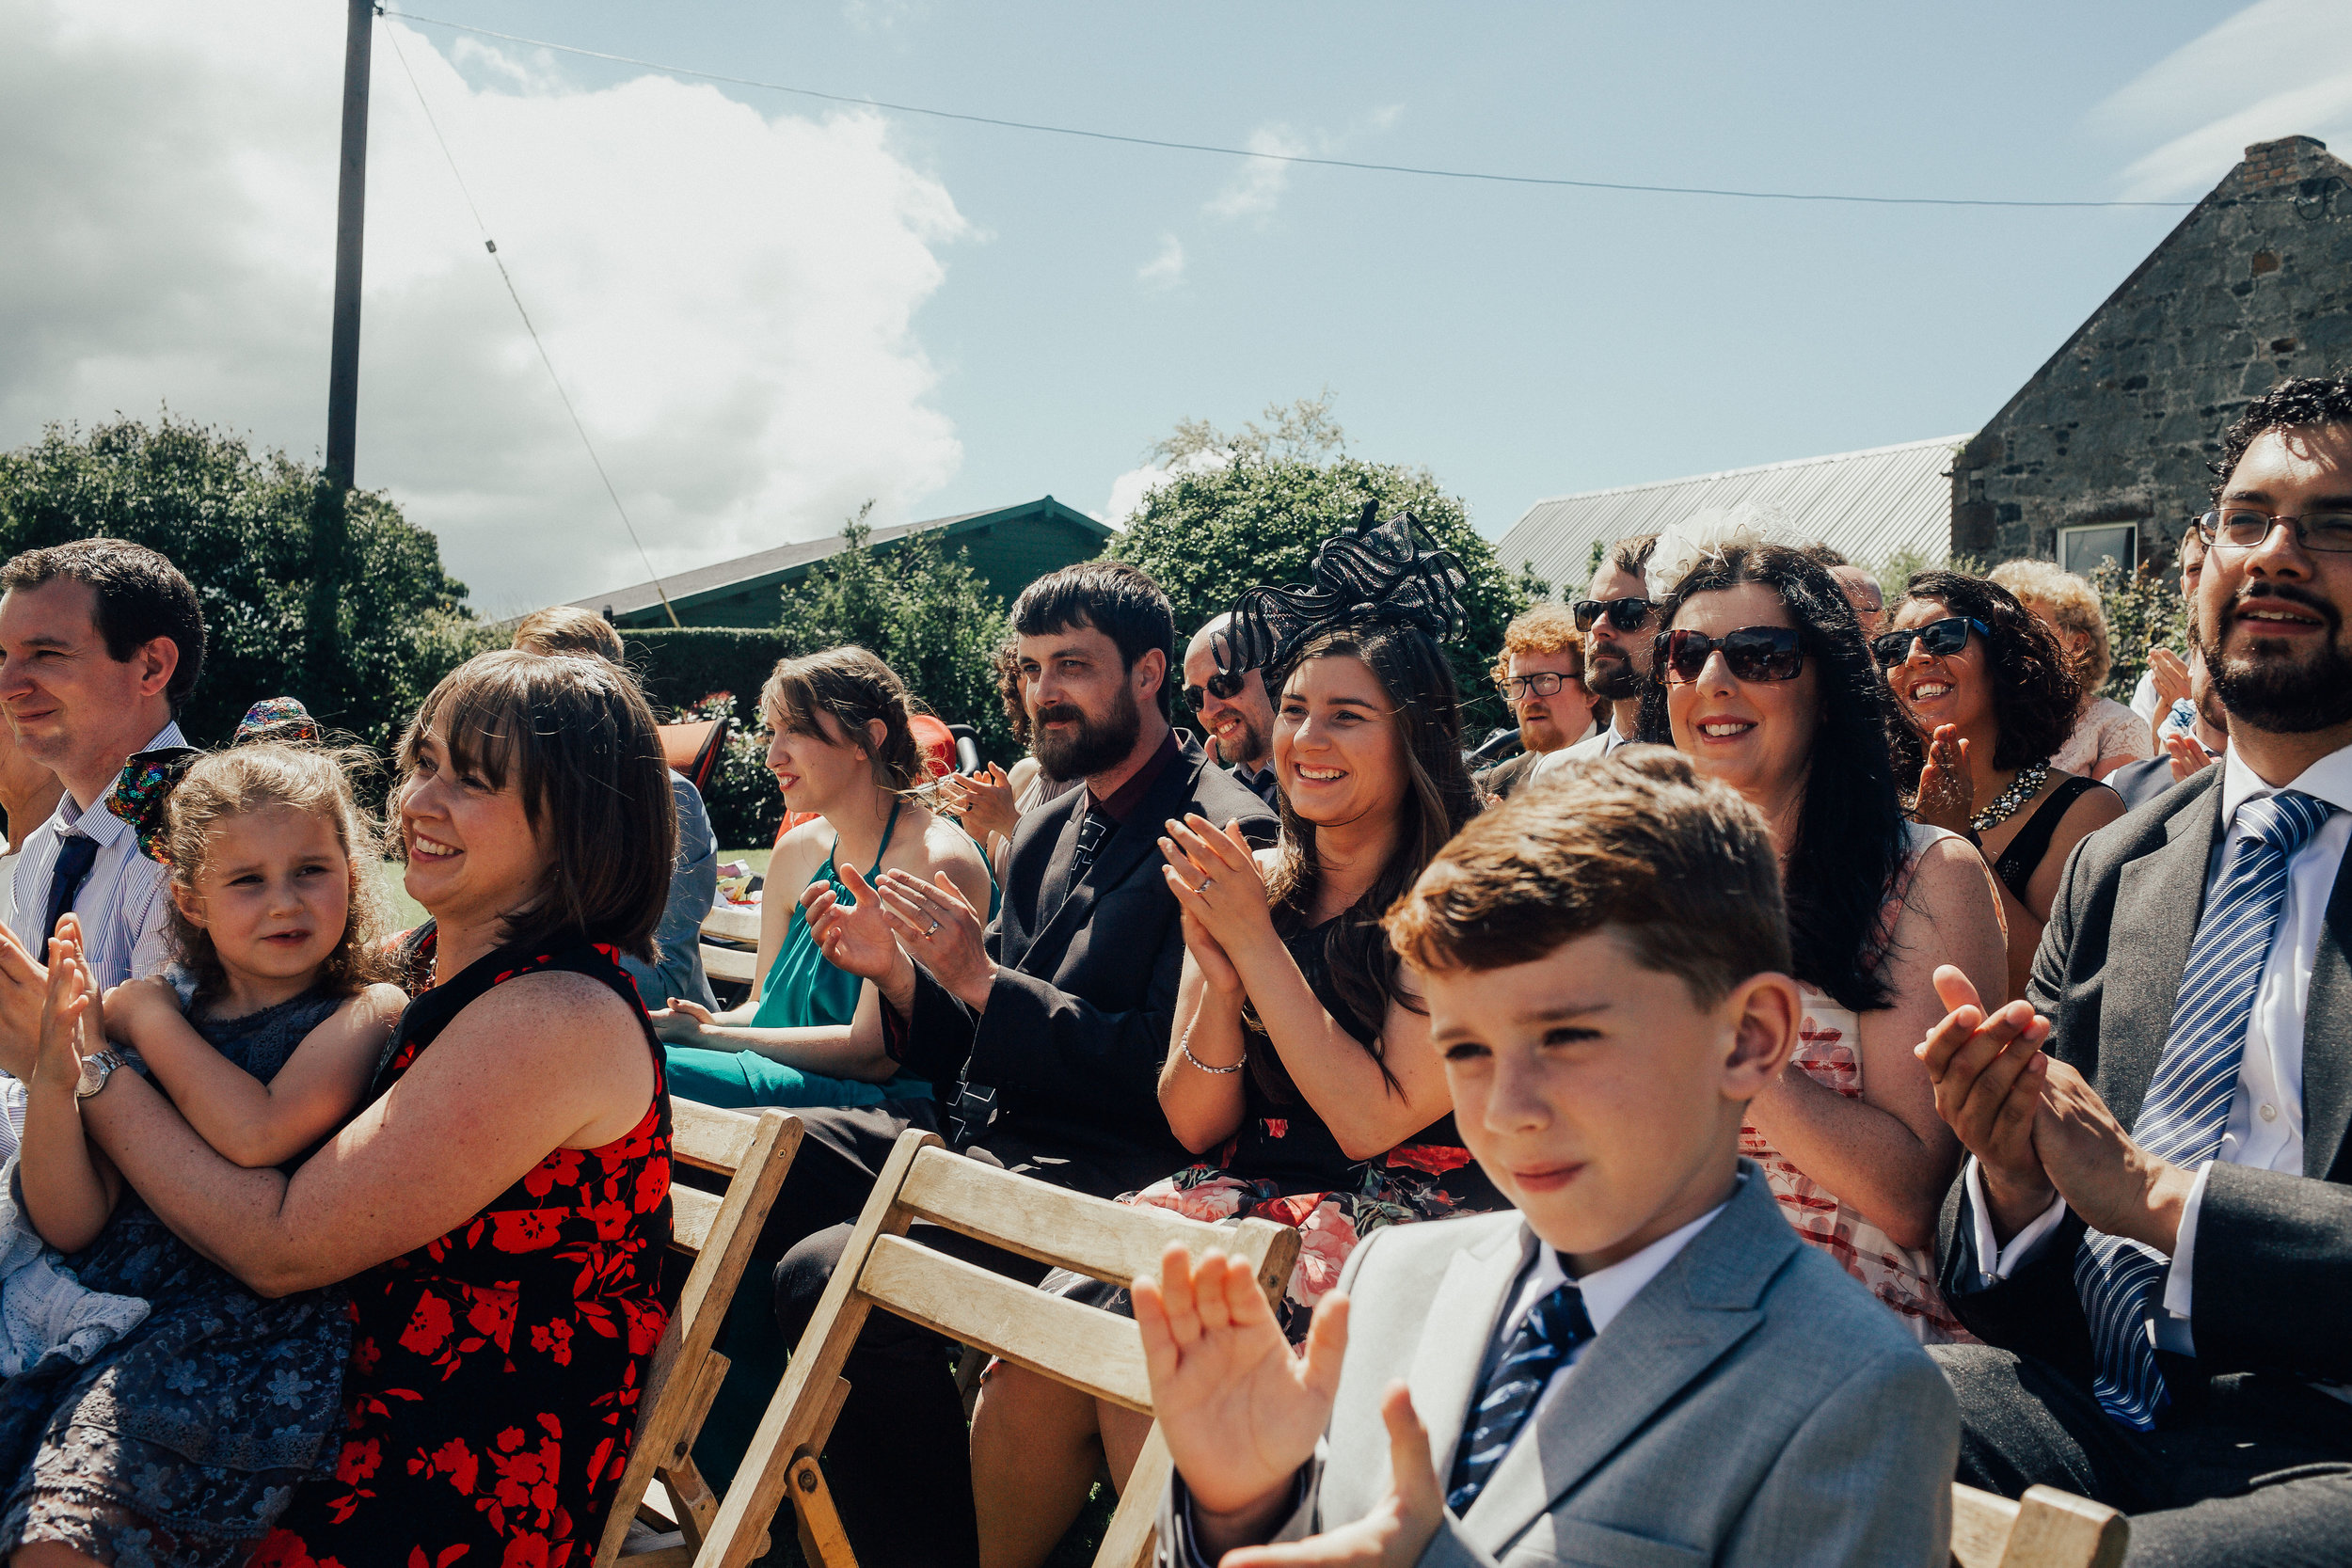 DALDUFF_FARM_COUNTRY_WEDDING_JASMINE_PHIL_PJ_PHILLIPS_PHOTOGRAPHY_31.jpg